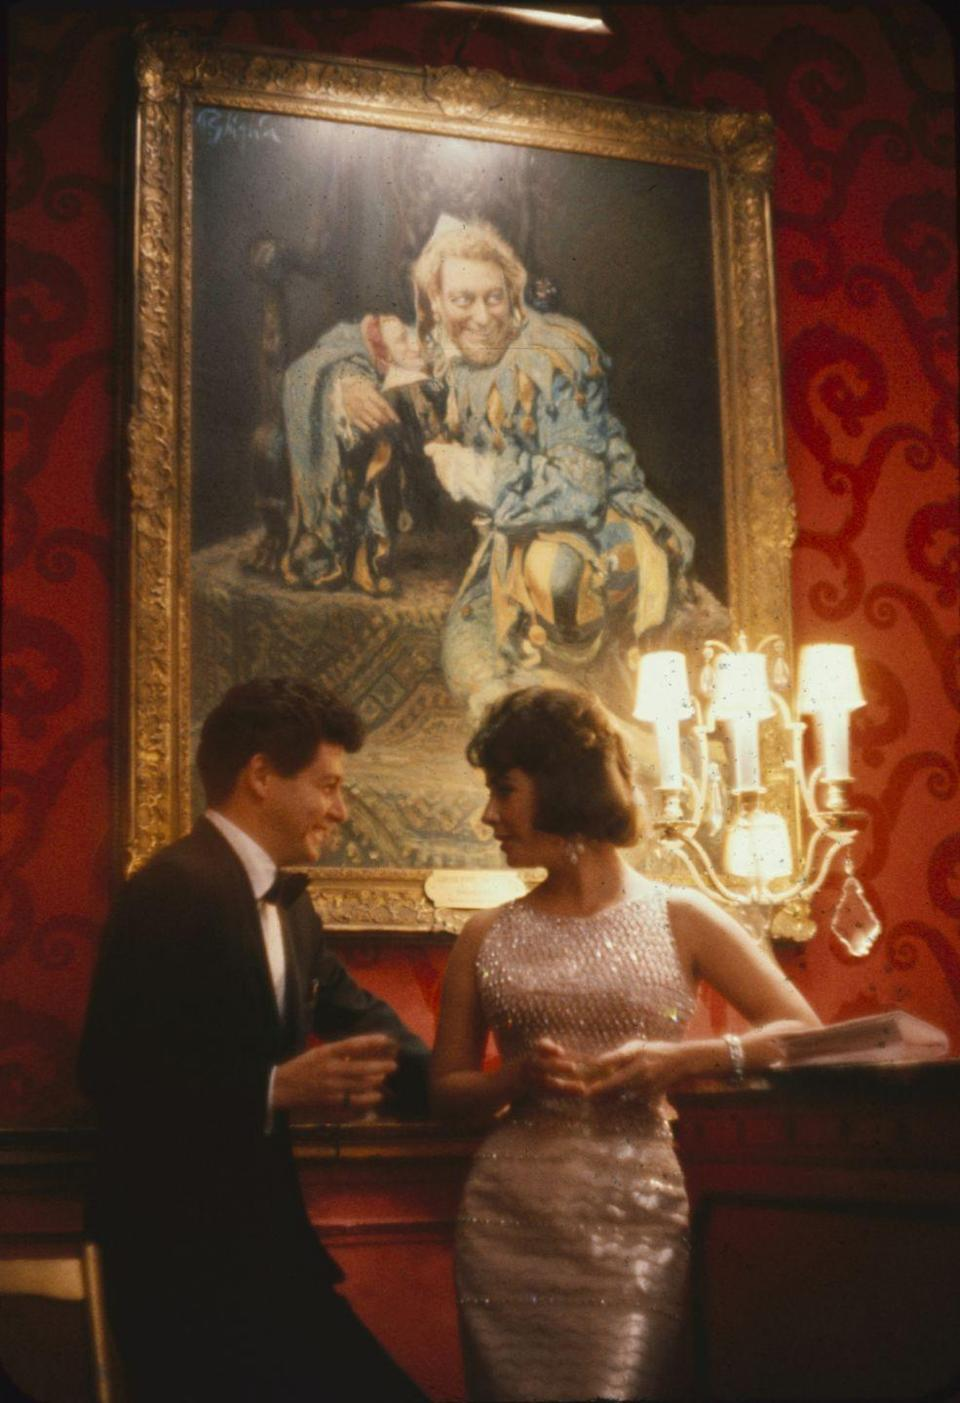 <p>After Mike's death, Elizabeth leaned on friend Eddie Fisher. It was then that the two began a scandalous affair. Eddie was married to actress Debbie Reynolds at the time, and their romance resulted in Elizabeth being labeled as a homewrecker.</p>